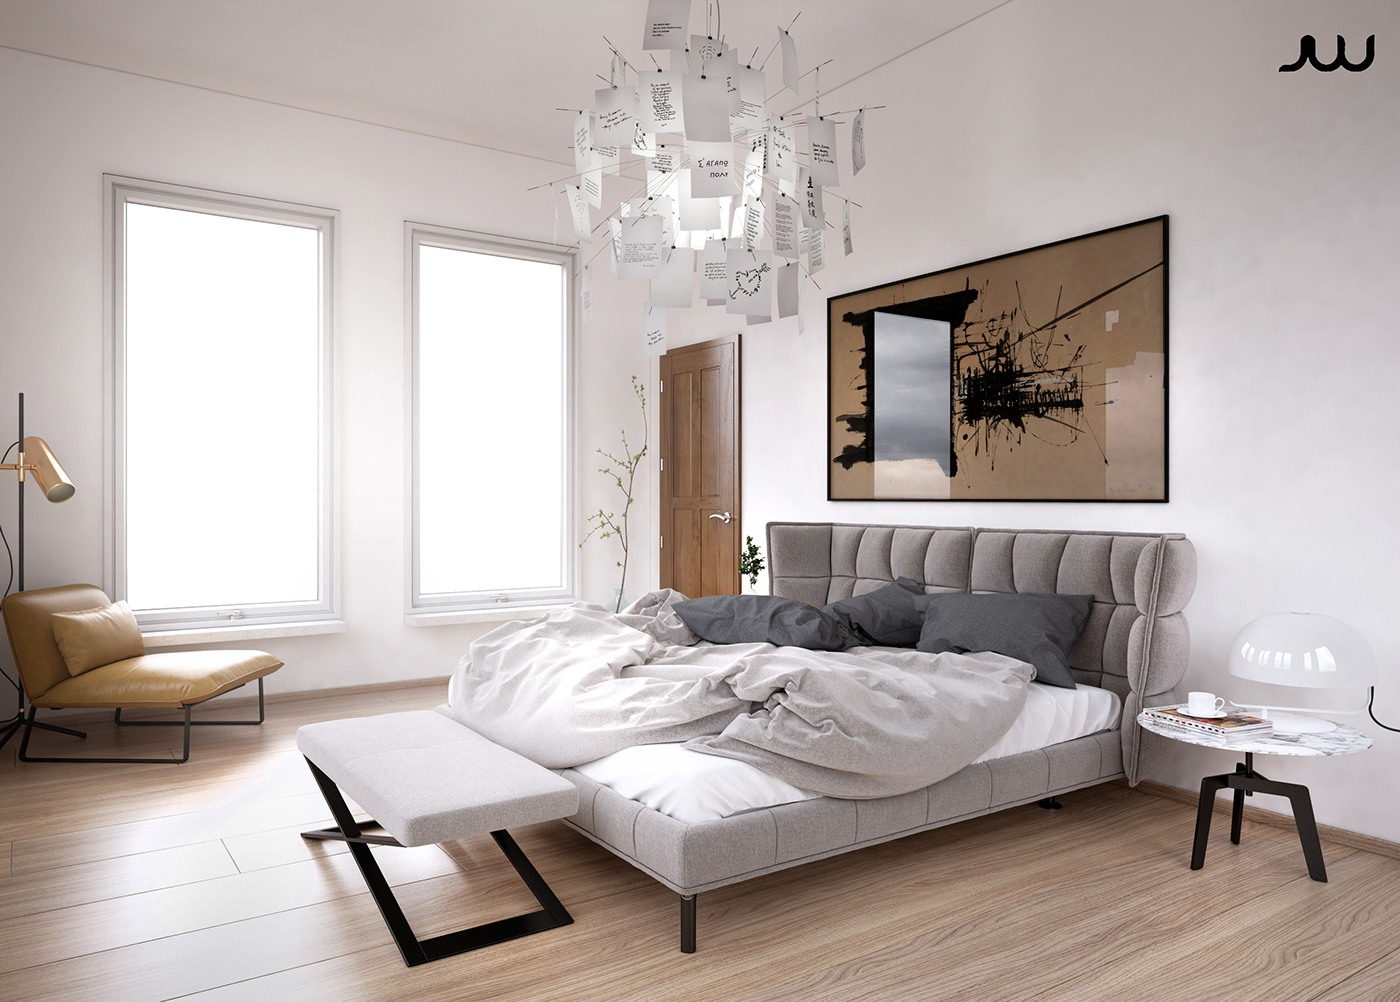 10 modern bedroom design ideas with luxury decorating for Luxury modern bedroom